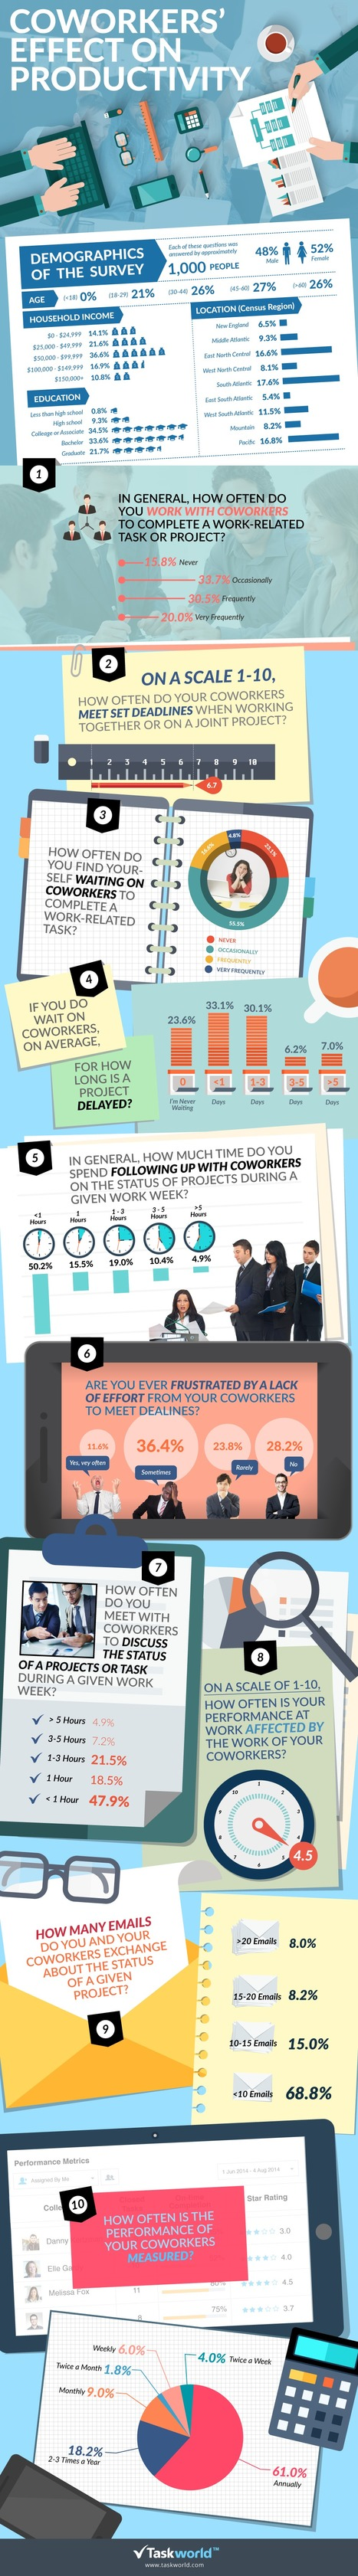 Coworkers' Effect on Productivity #infographic | Start-Up & Growth Hacking Tips | Scoop.it